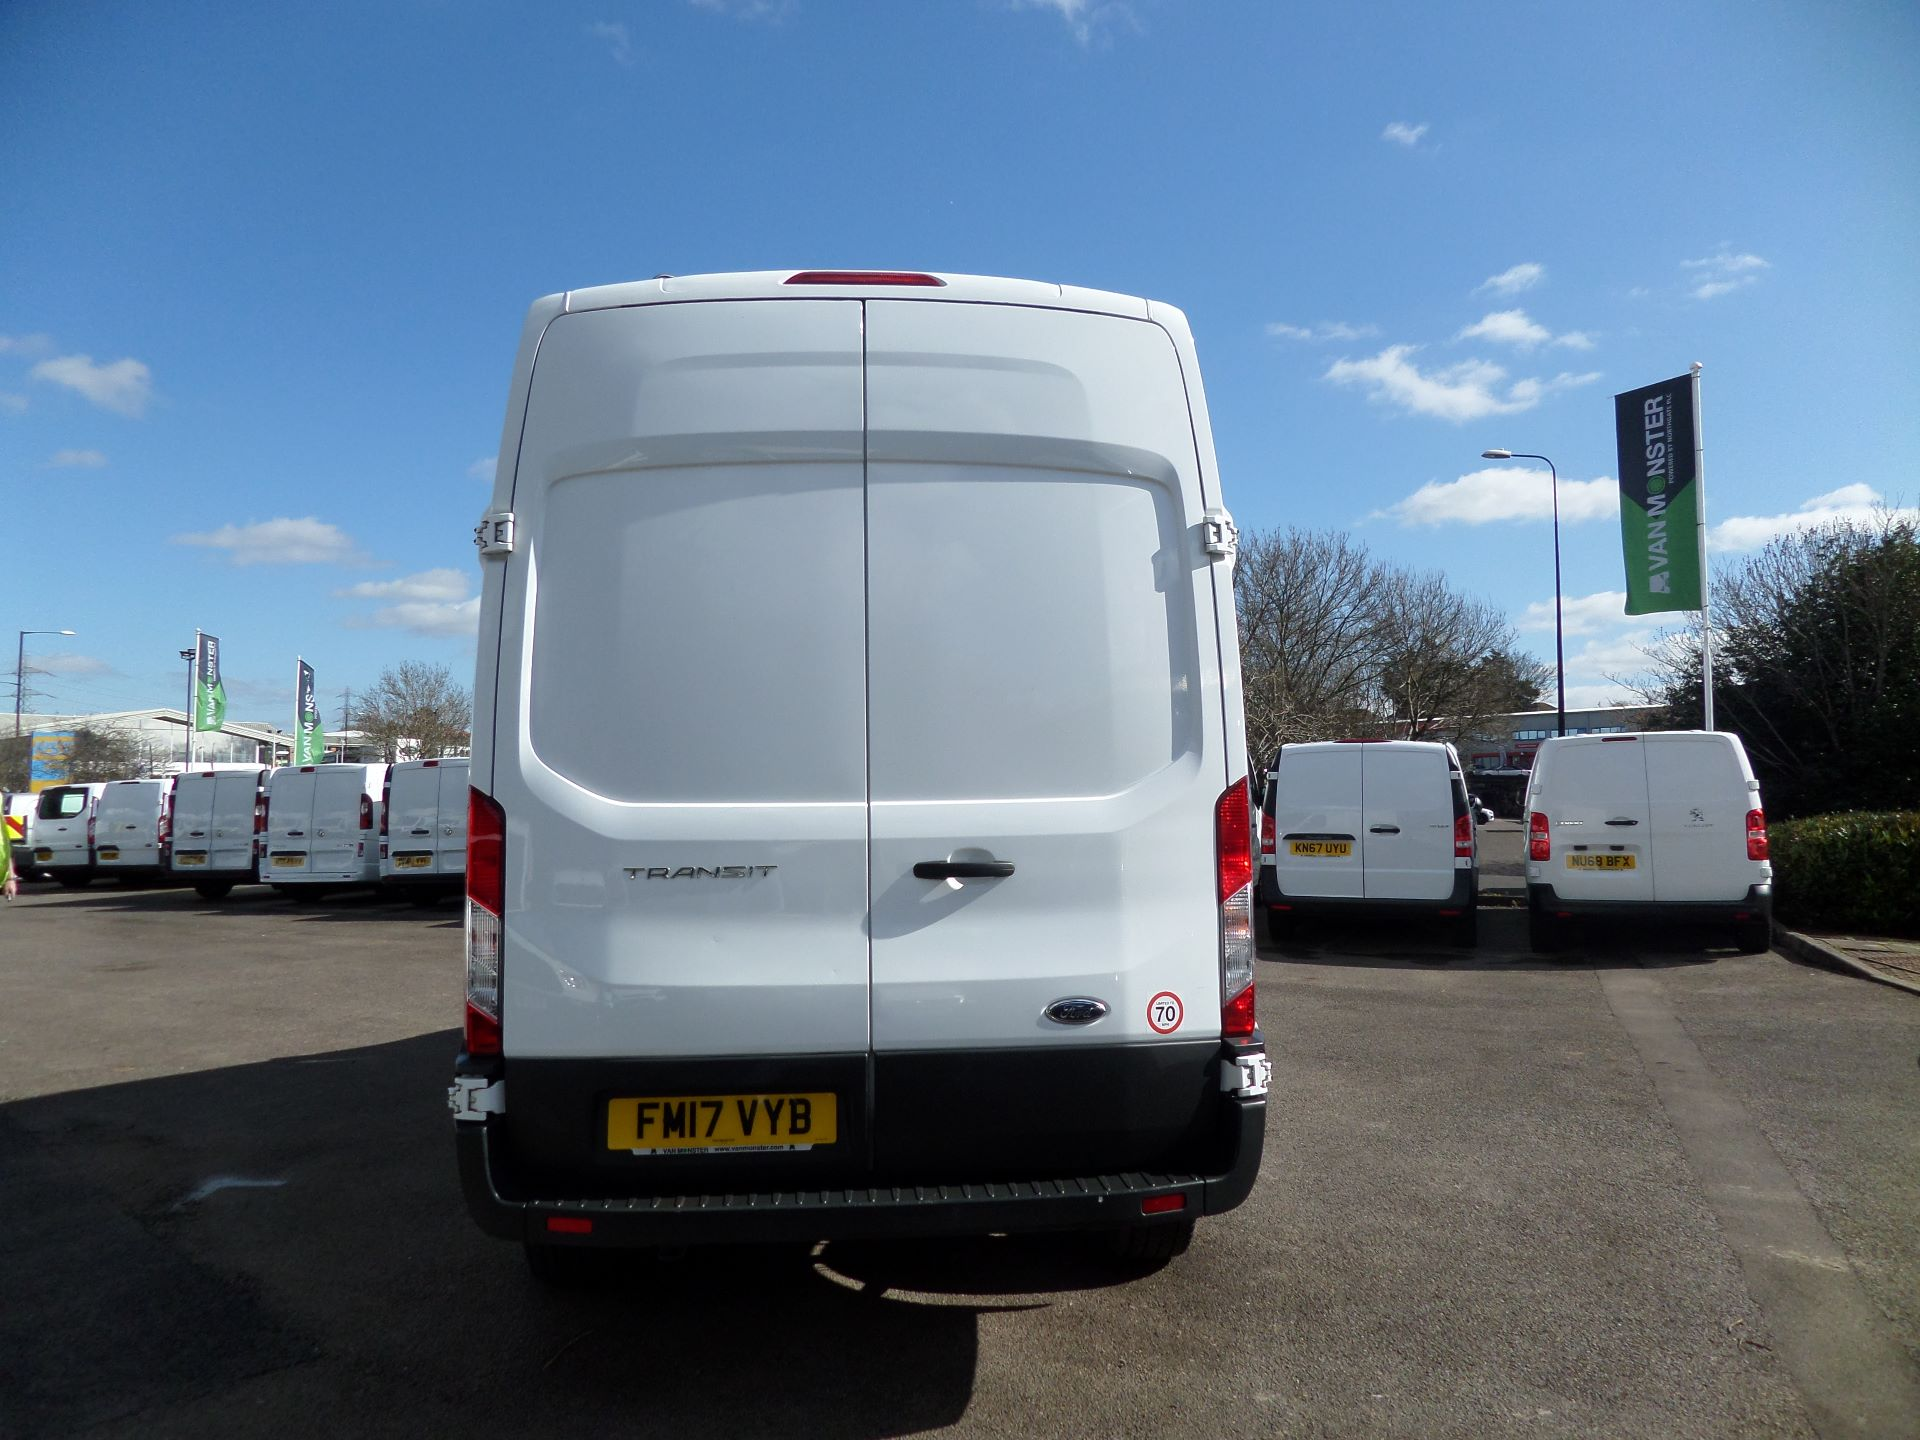 2017 Ford Transit 2.0 Tdci 130Ps H3 Van Euro 6 ( Limited To 70MPH ) (FM17VYB) Image 3